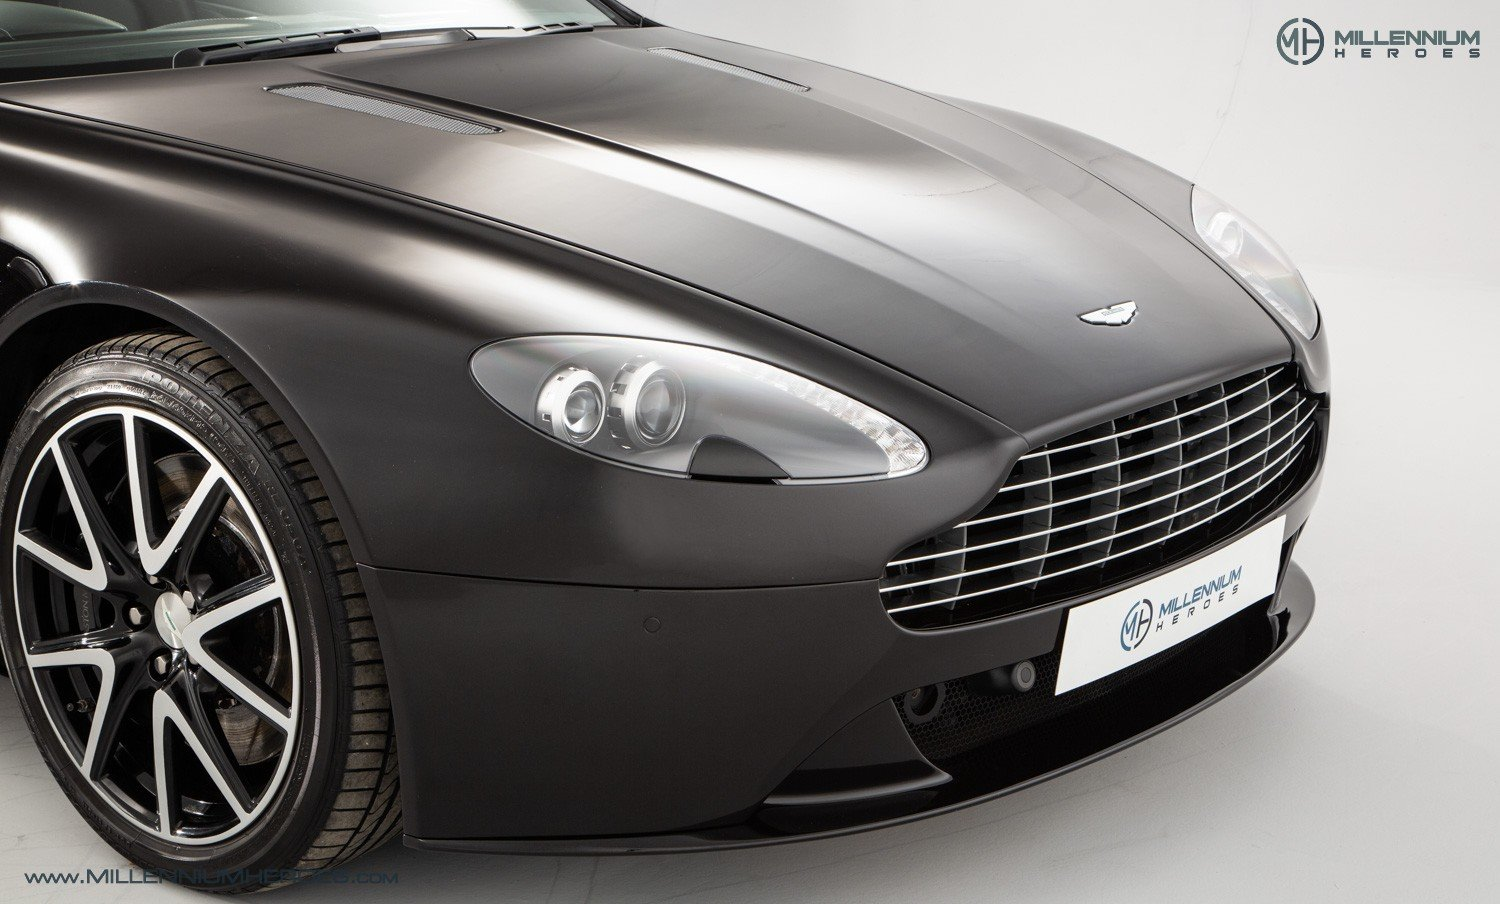 2013 ASTON MARTIN V8 VANTAGE S // AM WARRANTY // FULL AM HISTORY  For Sale (picture 5 of 23)